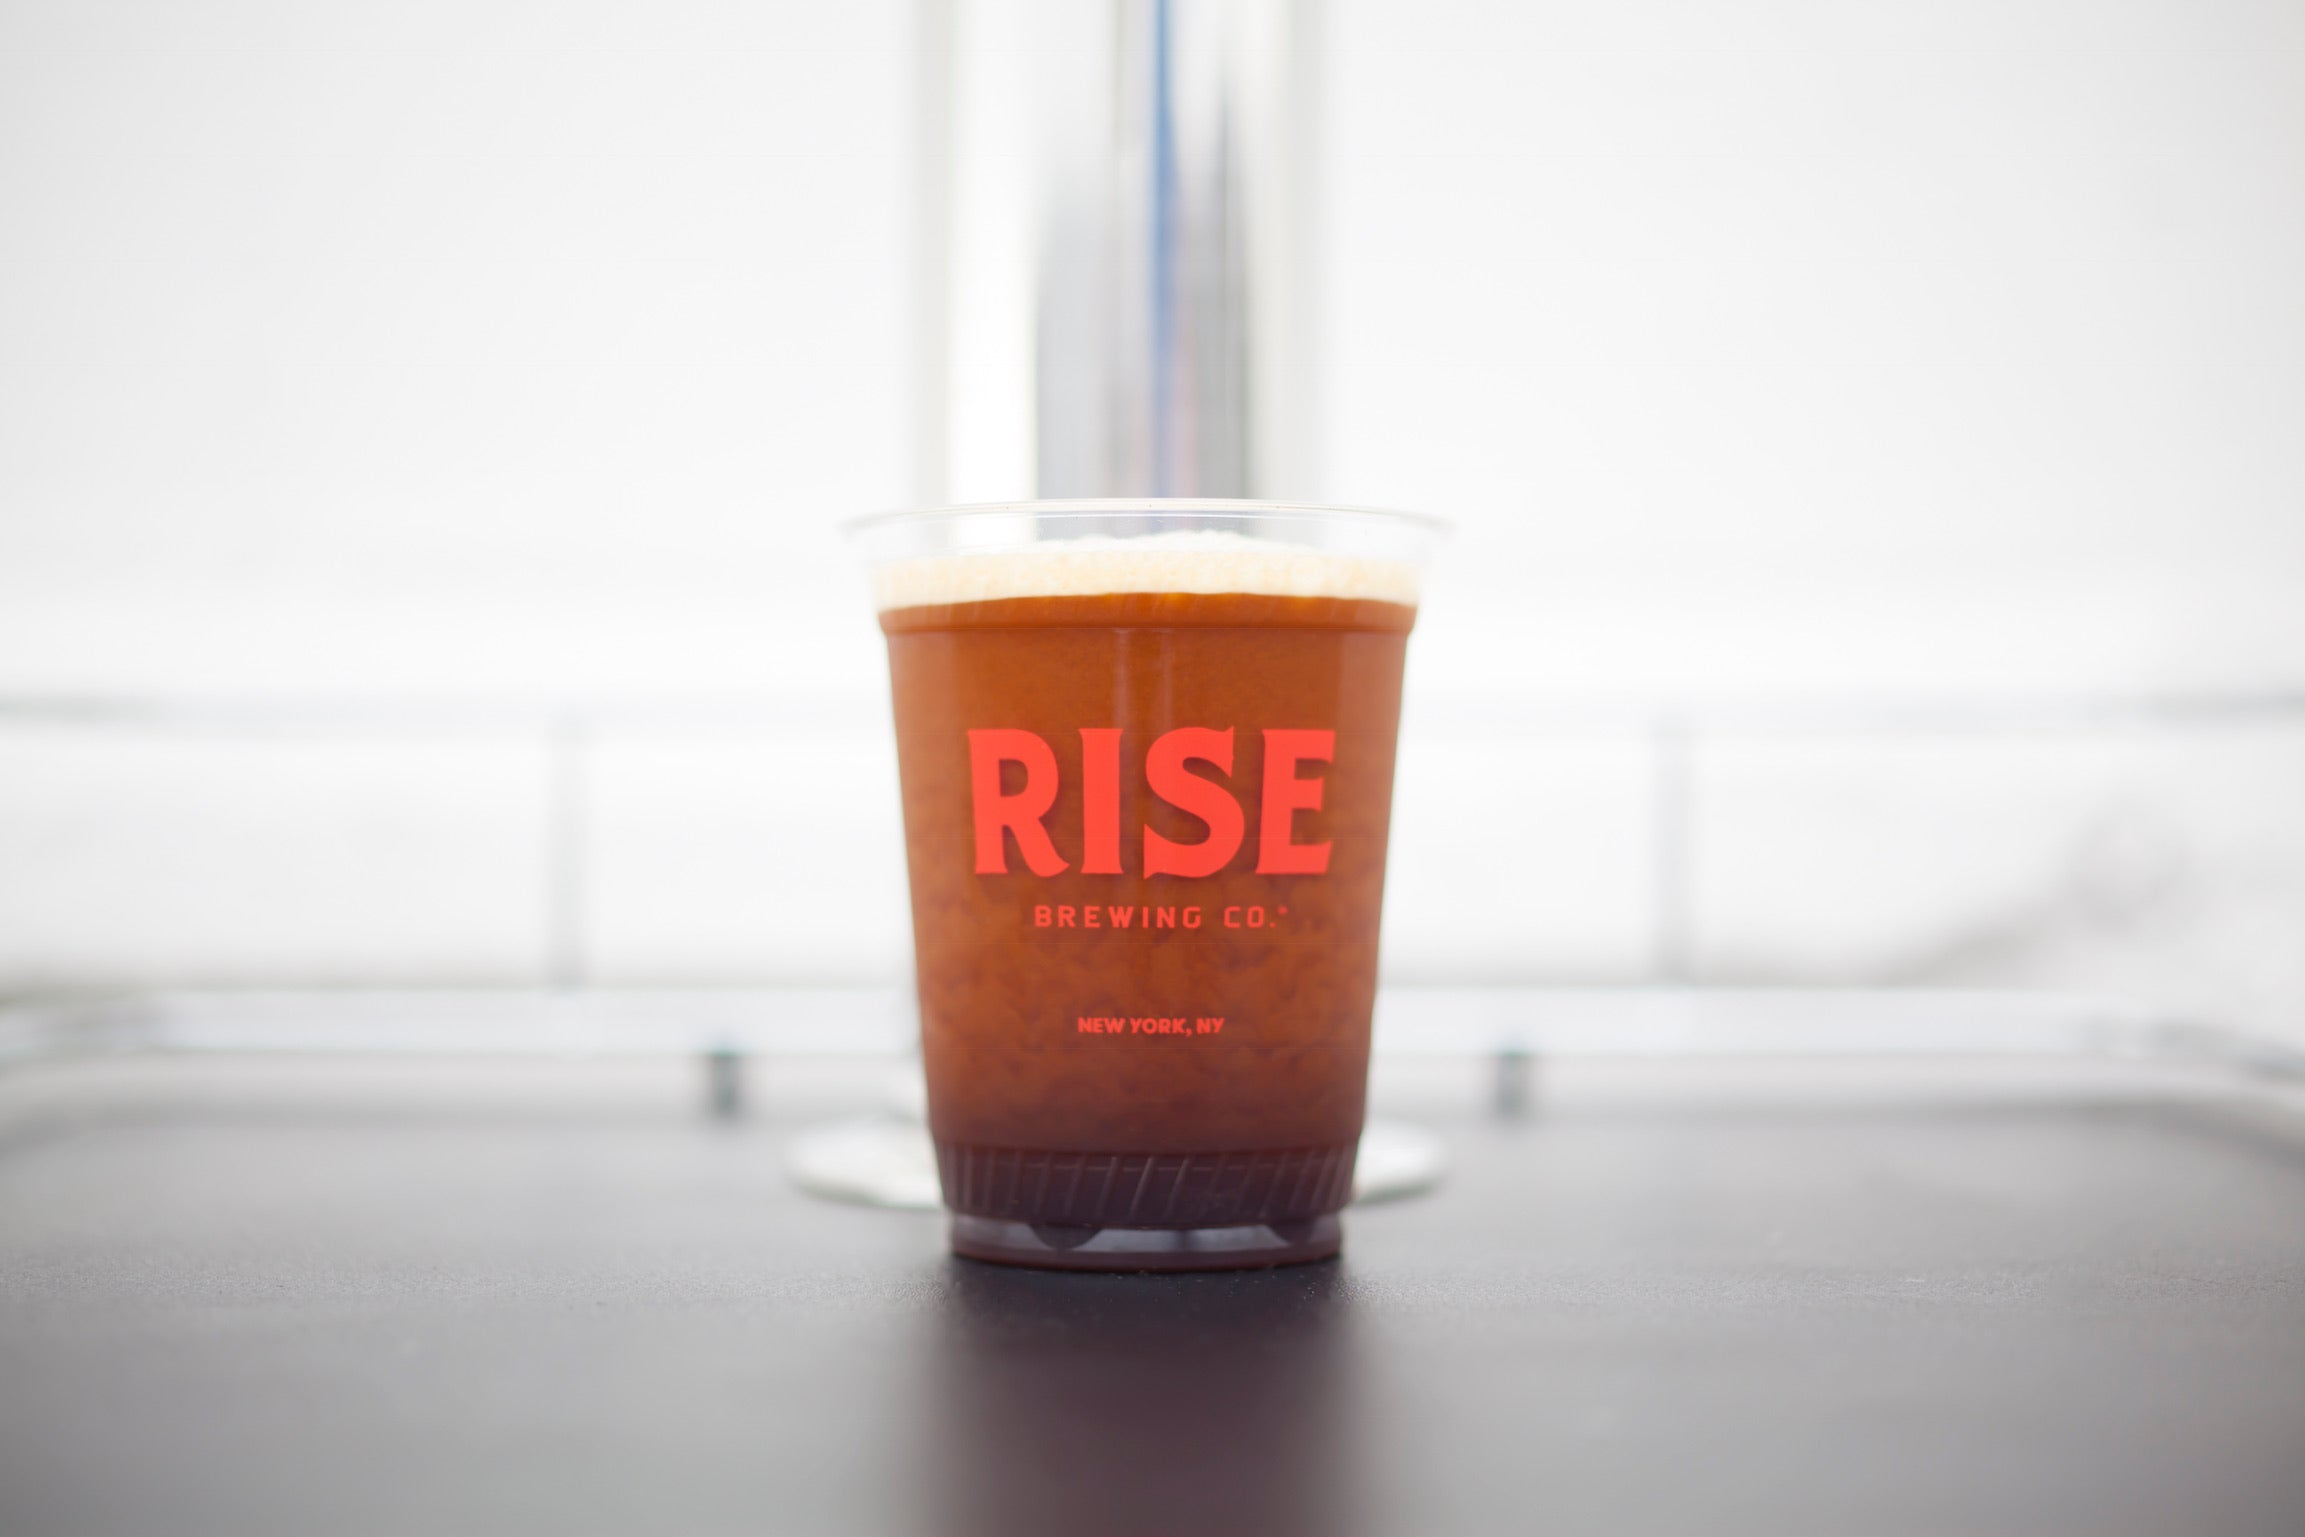 Creamy, frothy cascade of RISE nitro cold brew coffee - RISE Brewing Co.